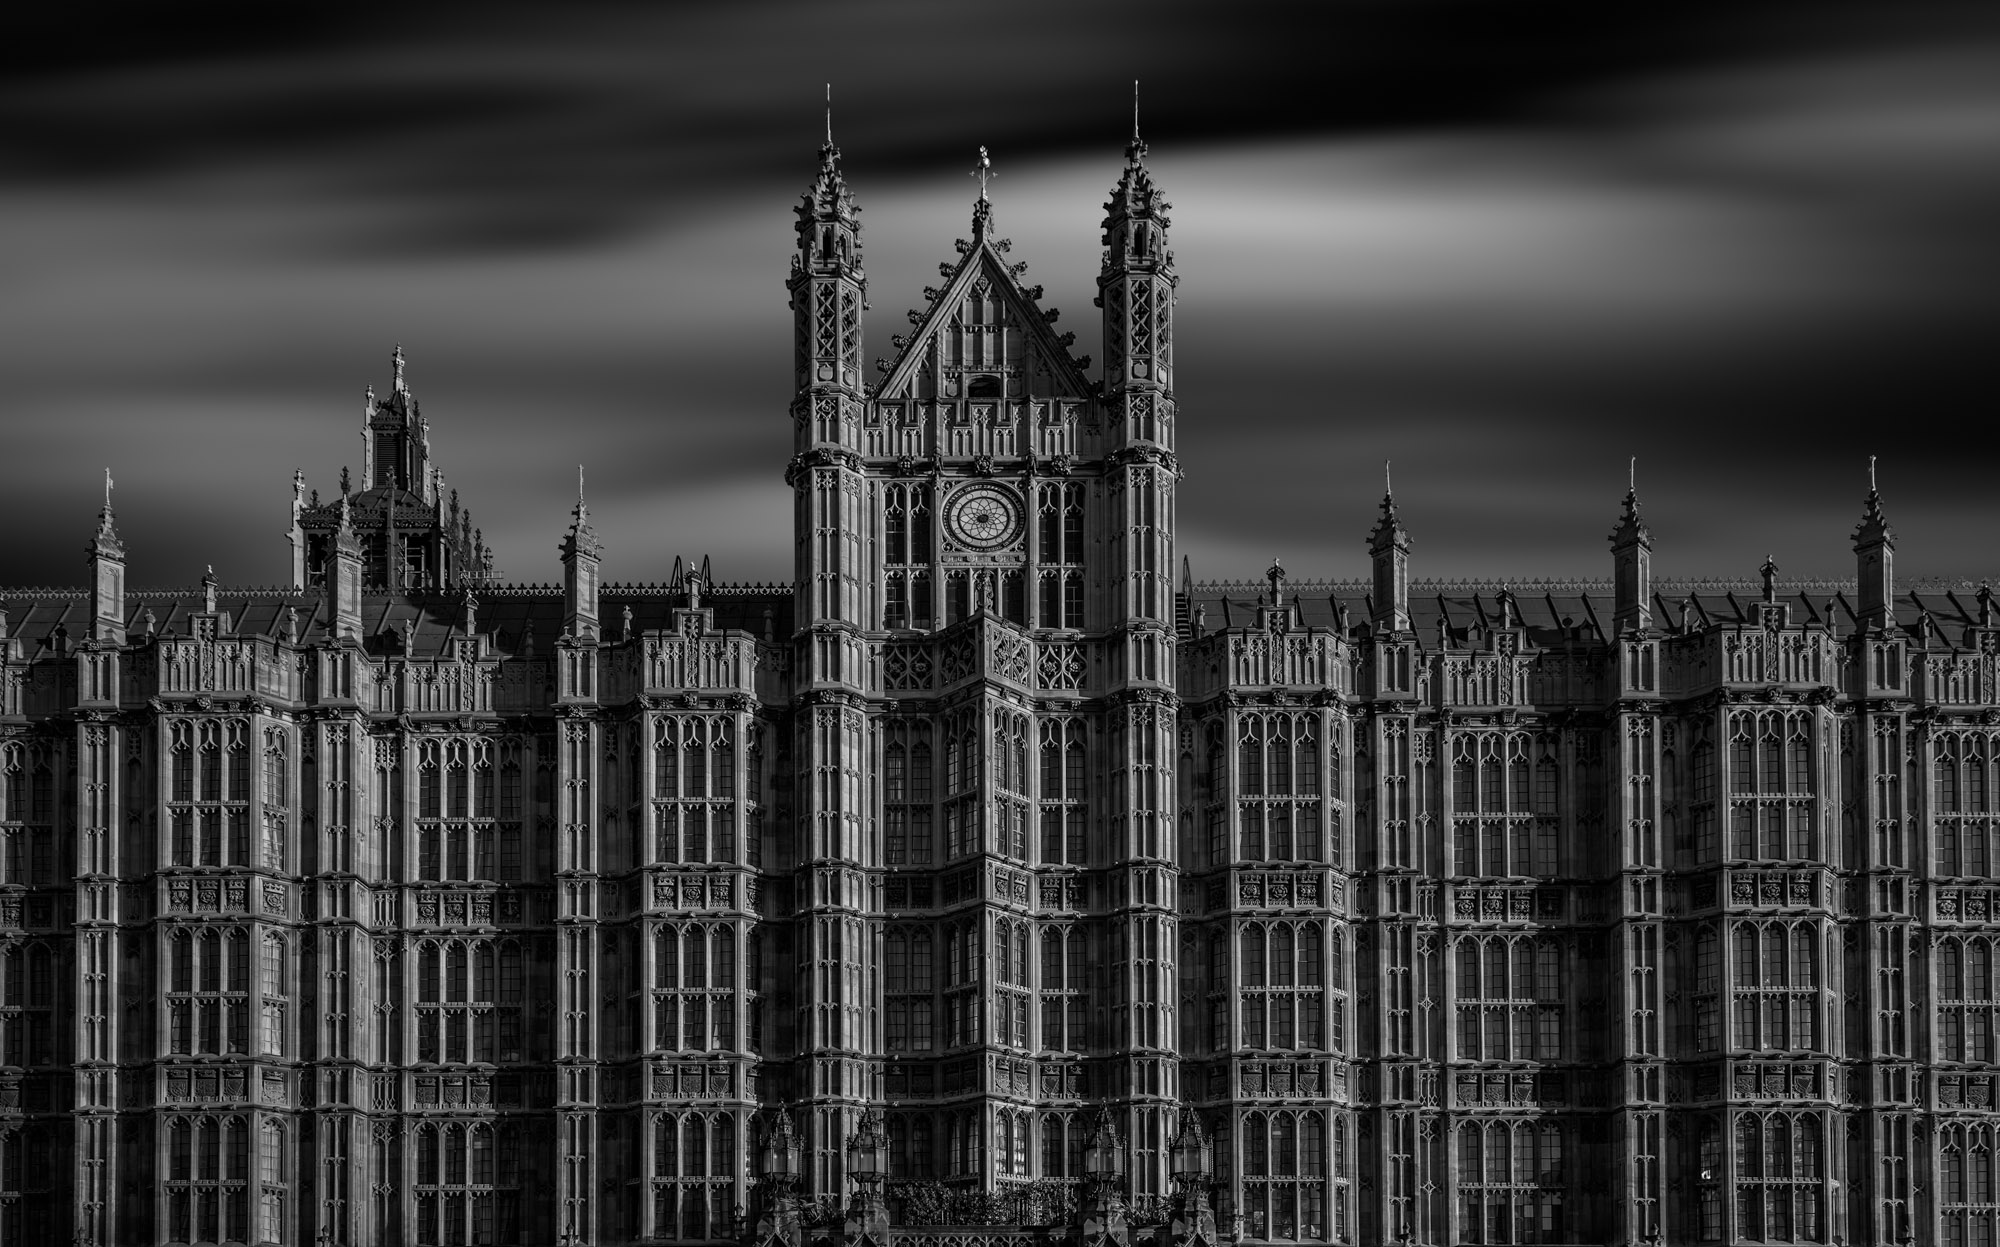 long exposure architecture photograph of Westminster Palace houses of parliament in London UK